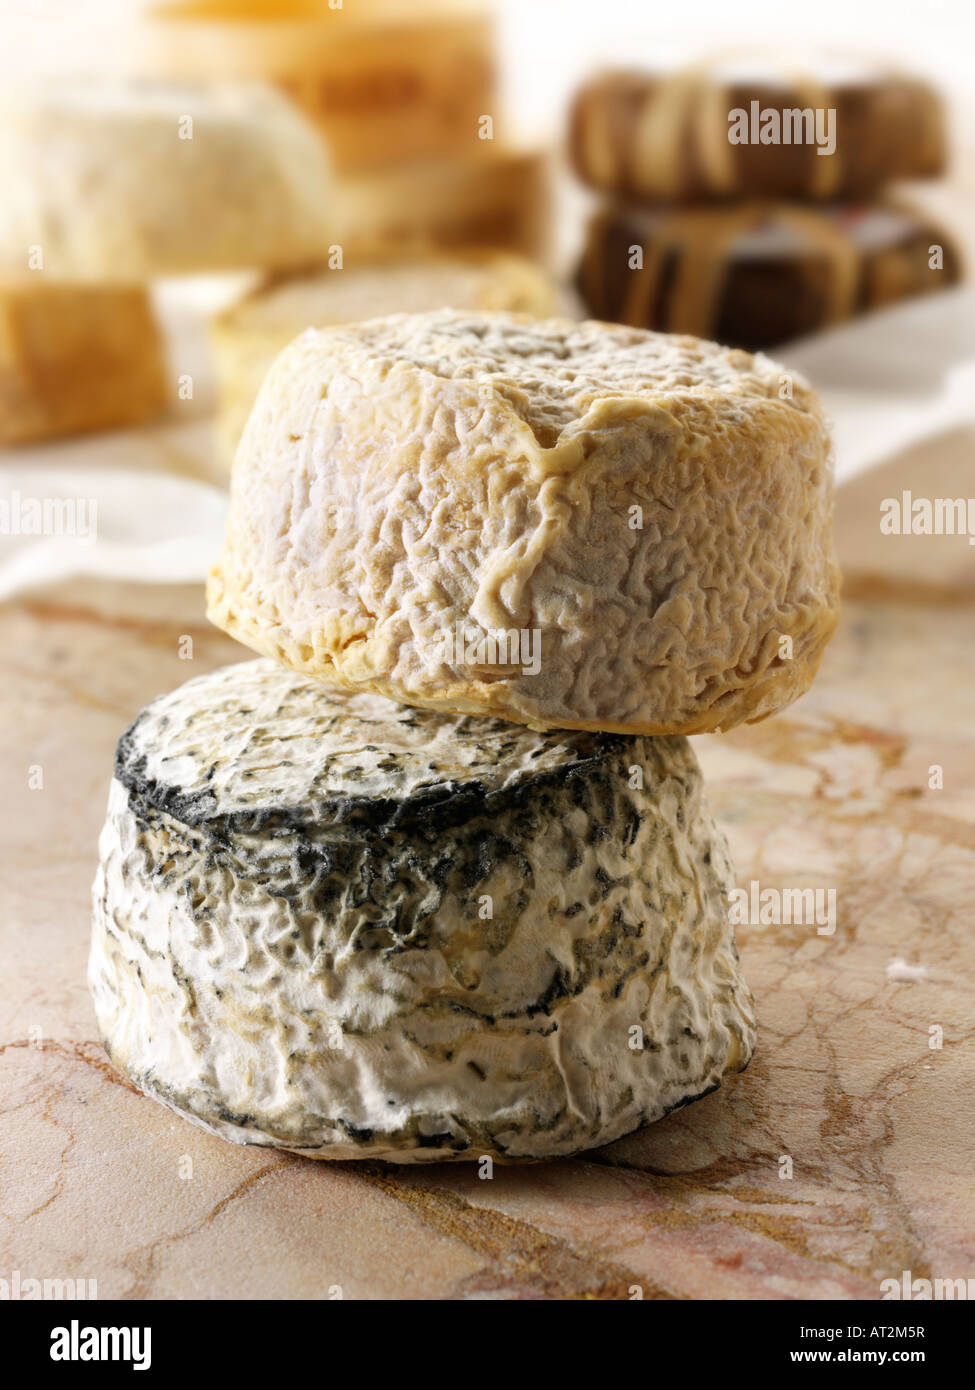 Farm goats cheese from Normandy in a cheese shop setting. - Stock Image